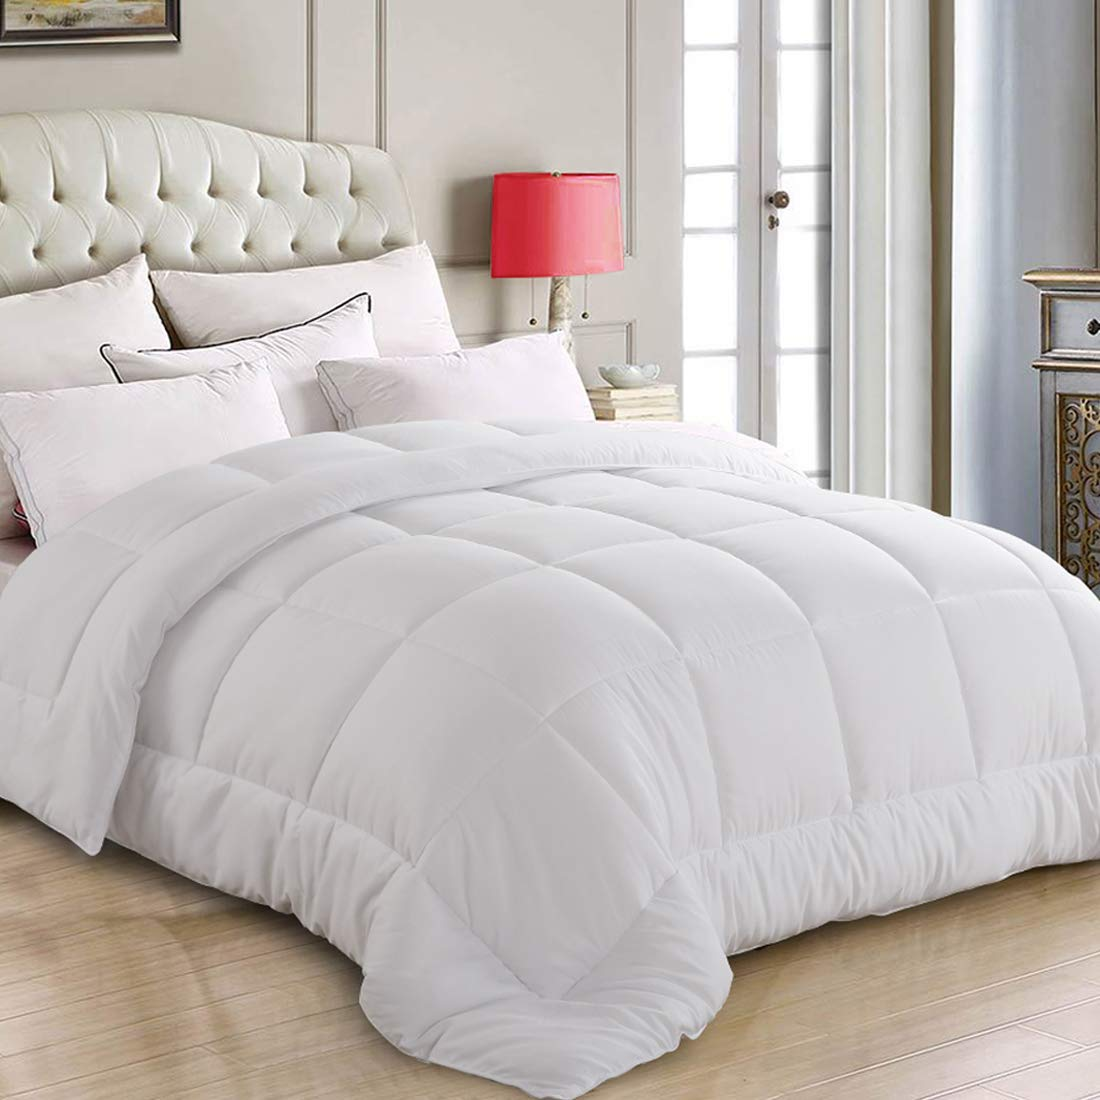 Amazon Com Thland King Size Comforter Fluffy Soft Quilted Down